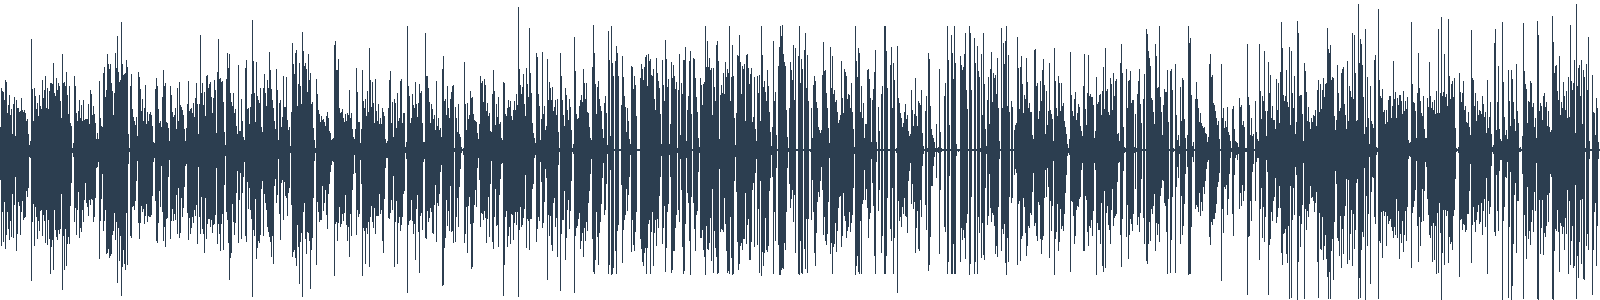 Prezidentov kocúr waveform